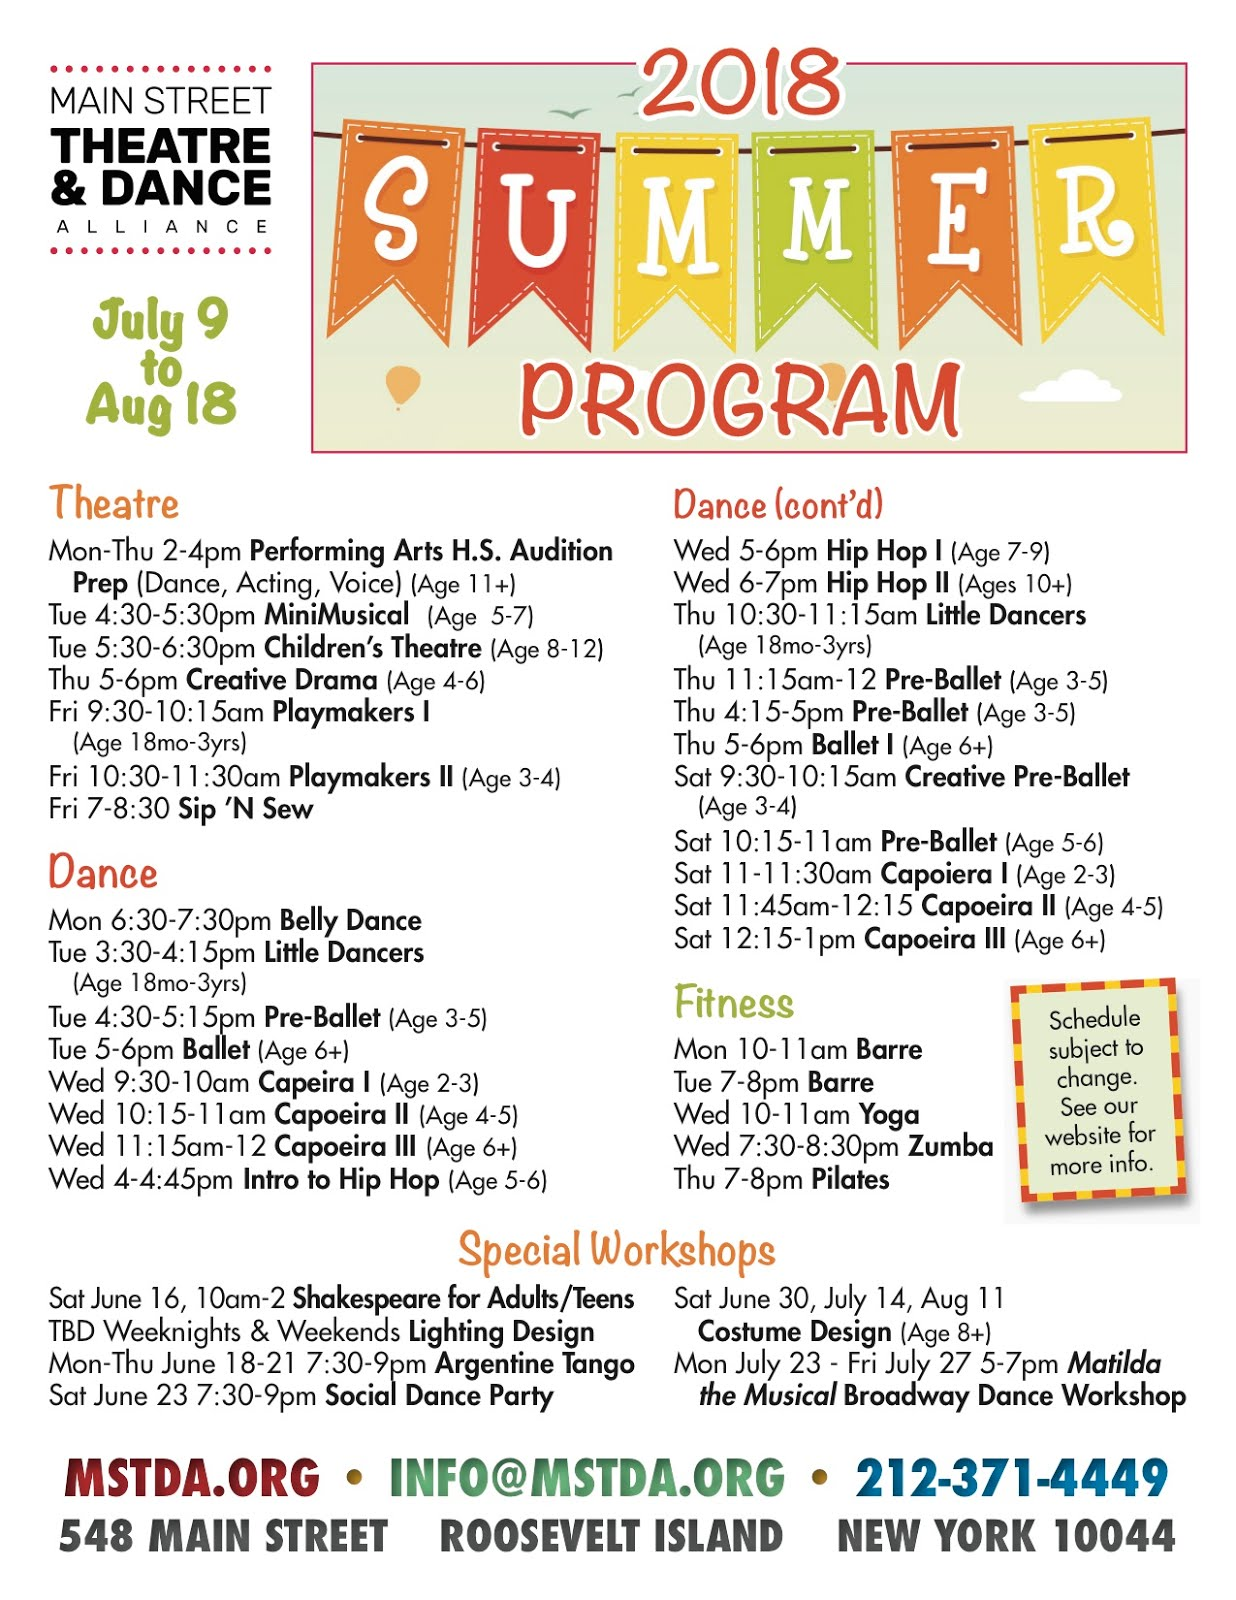 Main Street Theatre & Dance Alliance 2018 Summer Program